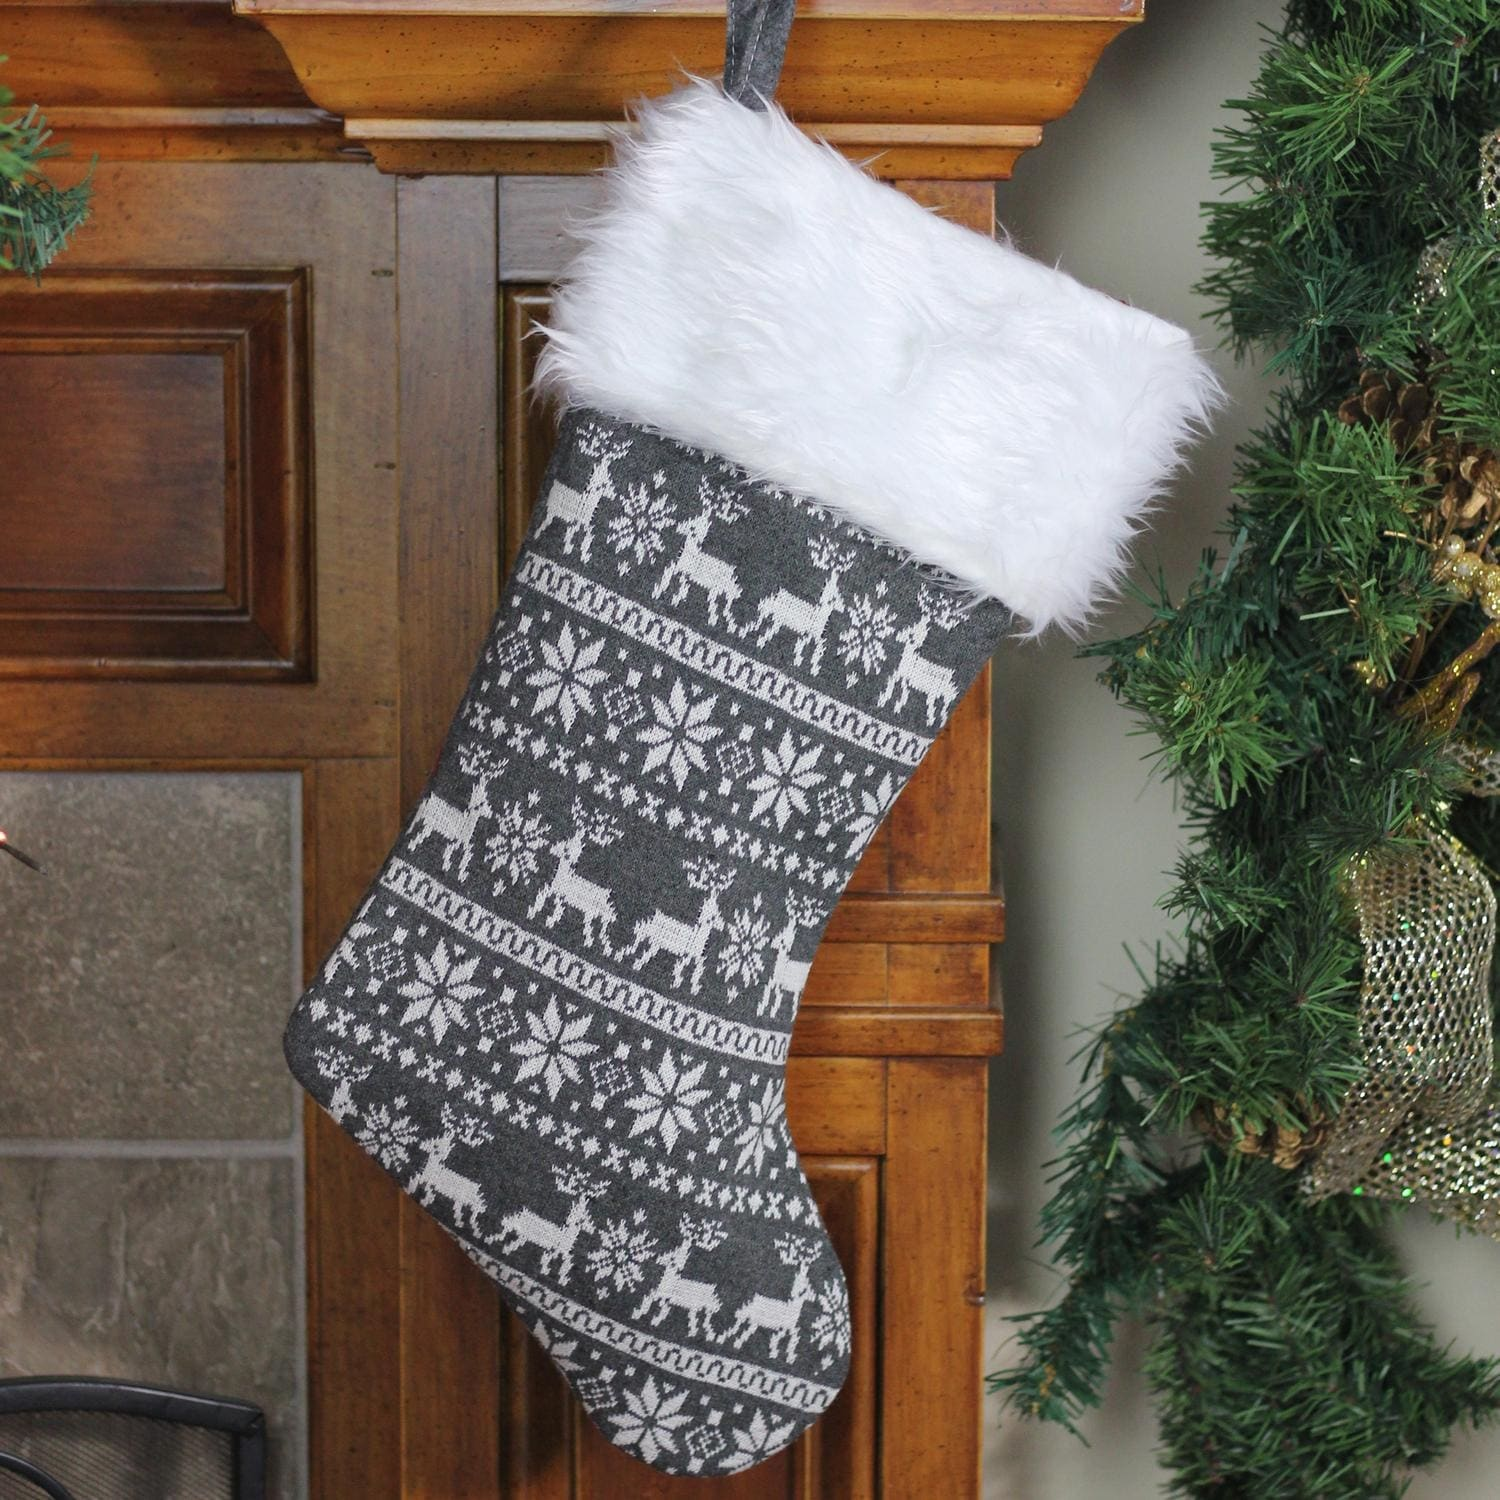 Gray Christmas Stockings.15 5 Gray And White Reindeer And Snowflake Knit Christmas Stocking With Faux Fur Cuff